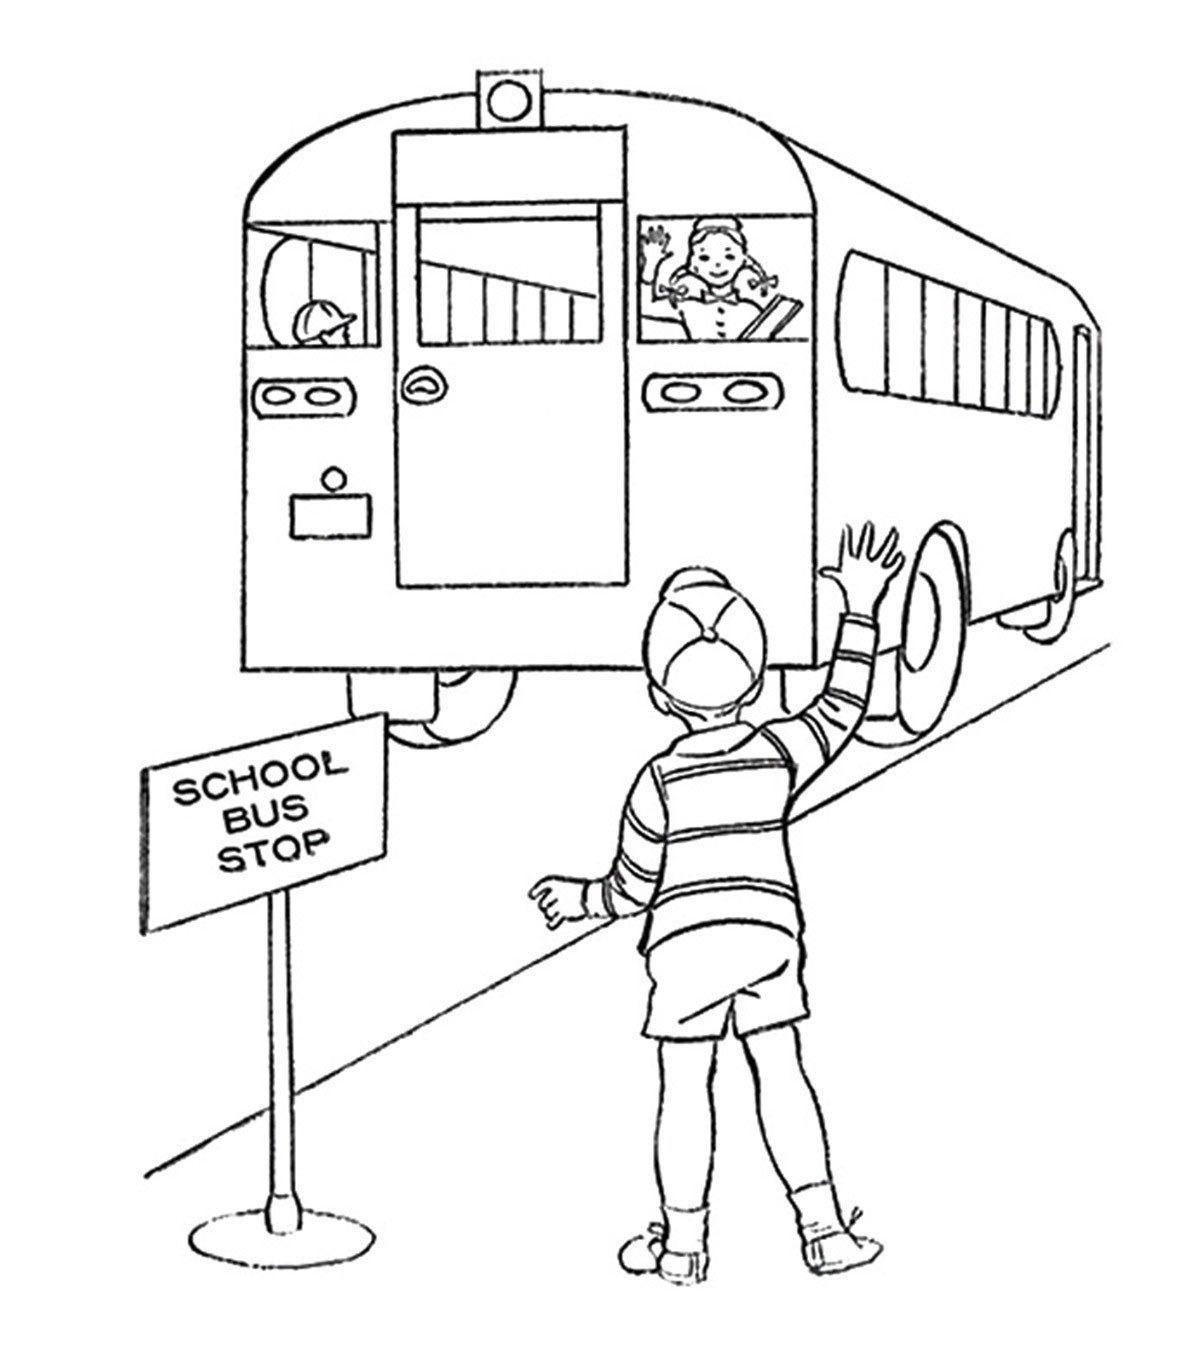 free school bus safety coloring book contest pins internet pages